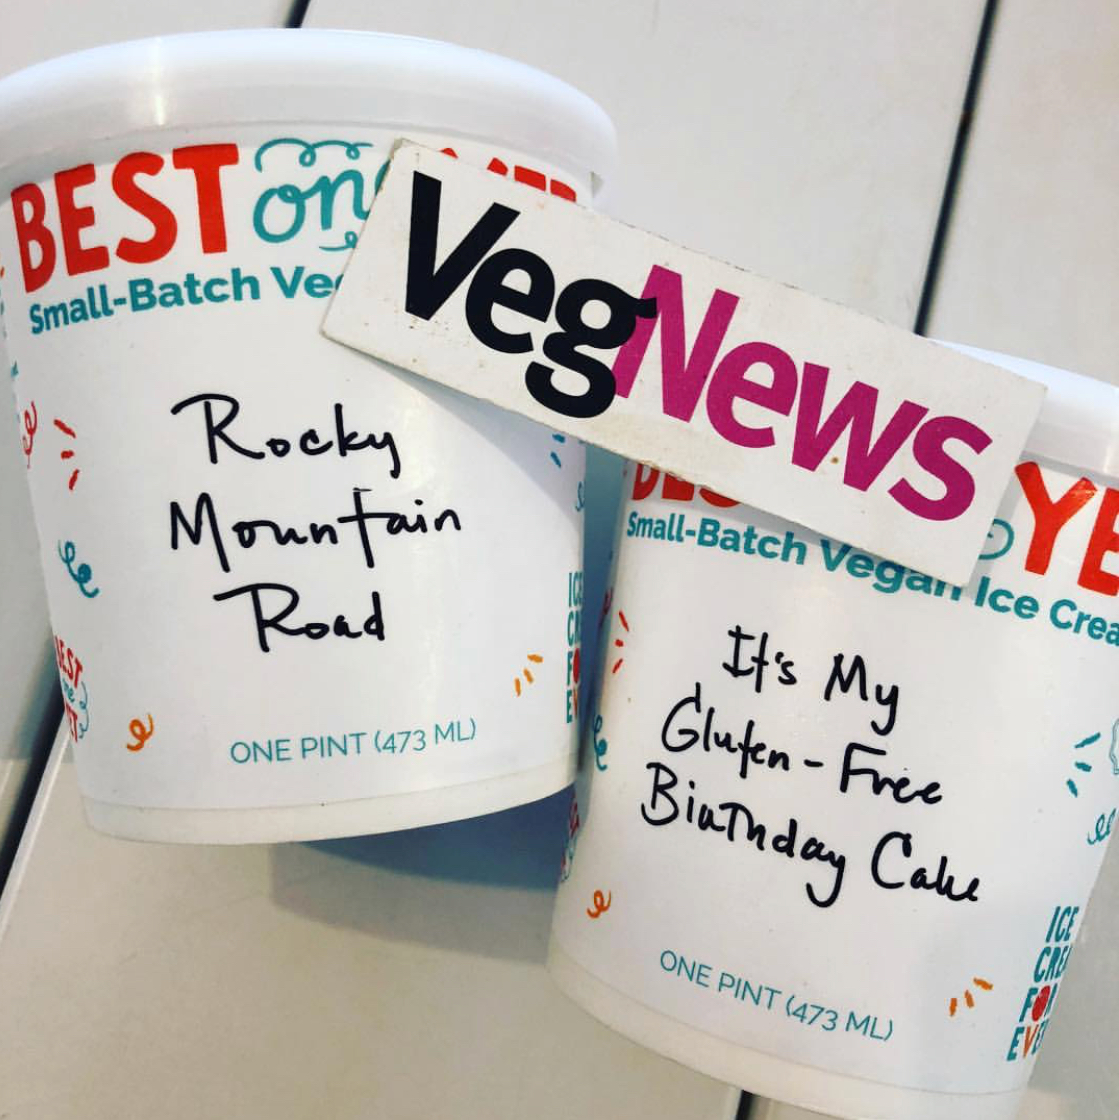 VegNews - VegNews checked out our new pint packaging!